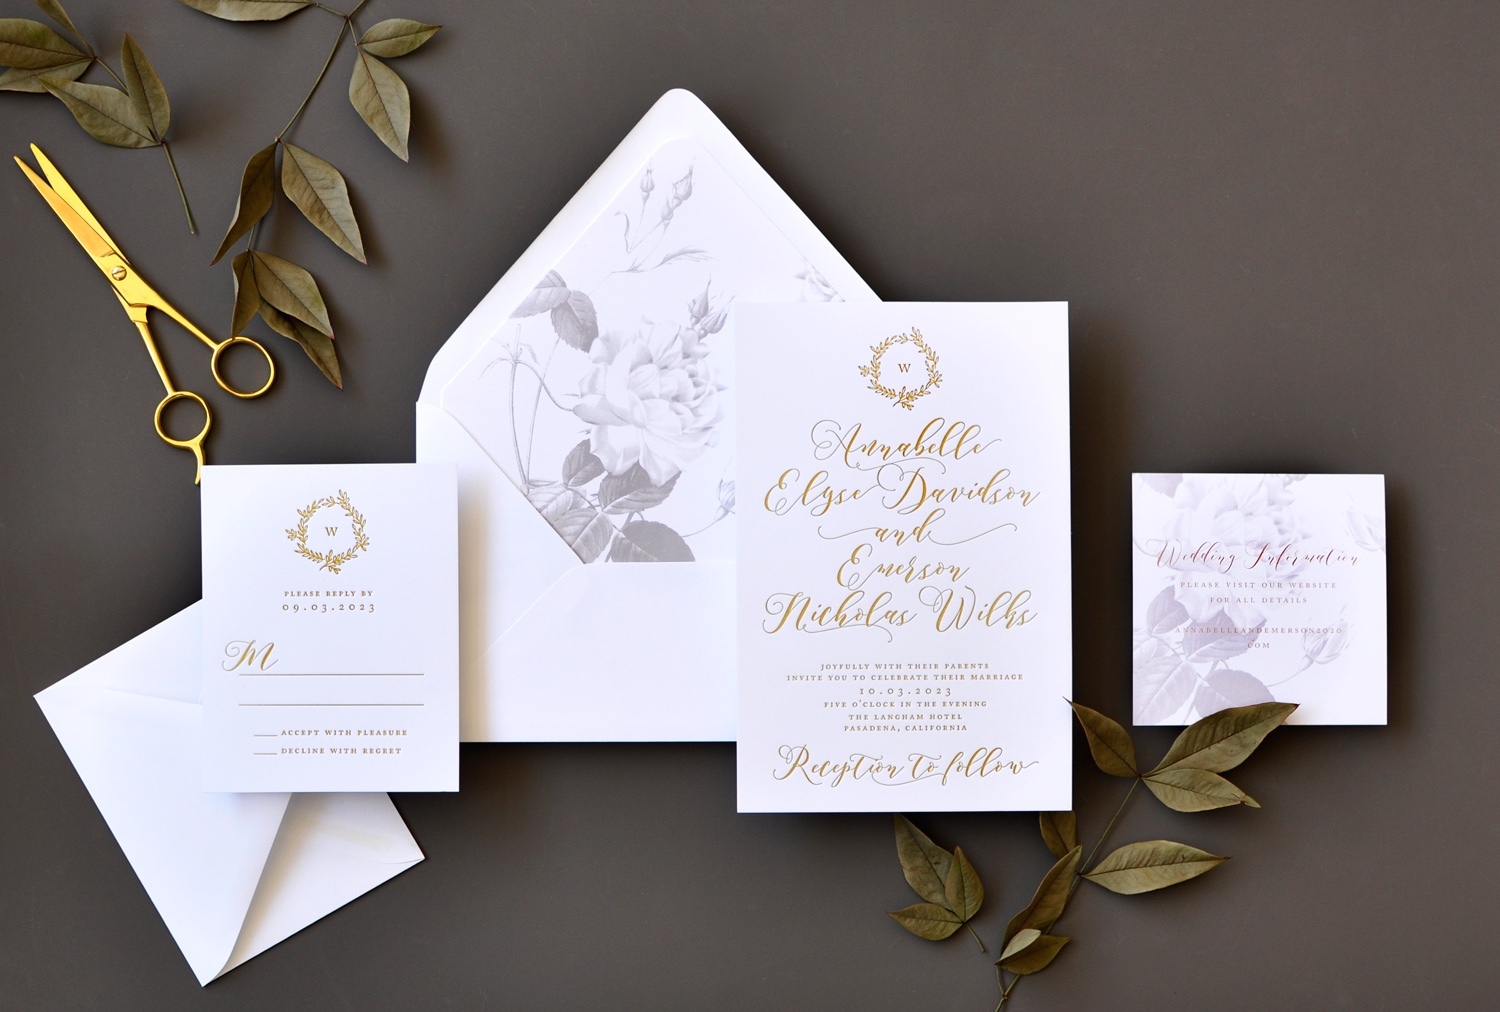 Annabelle foil stamped wedding invitation features calligraphy and an ornate monogram